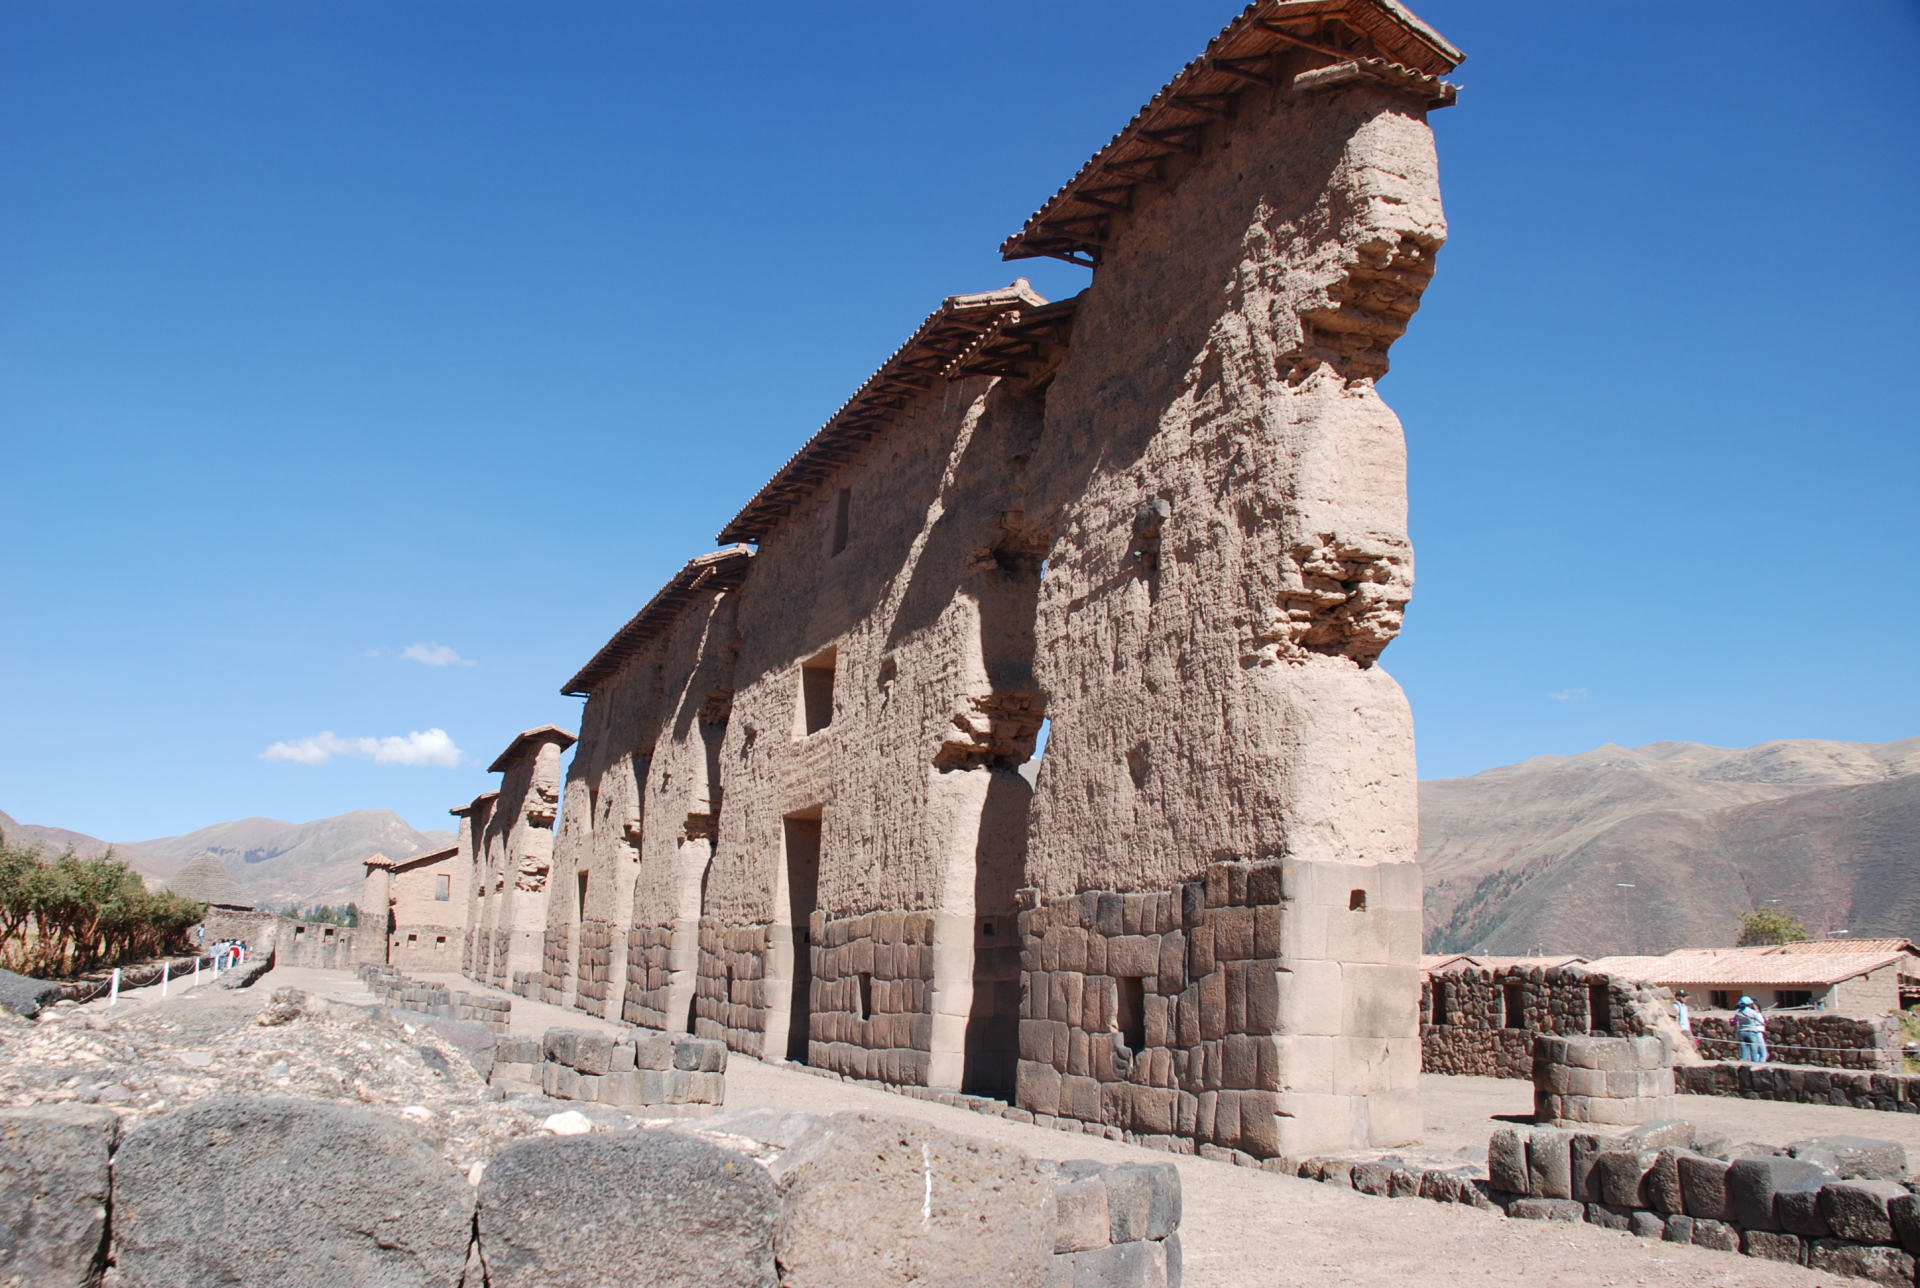 Peru - Remains of Pre-Colonial Religious Center